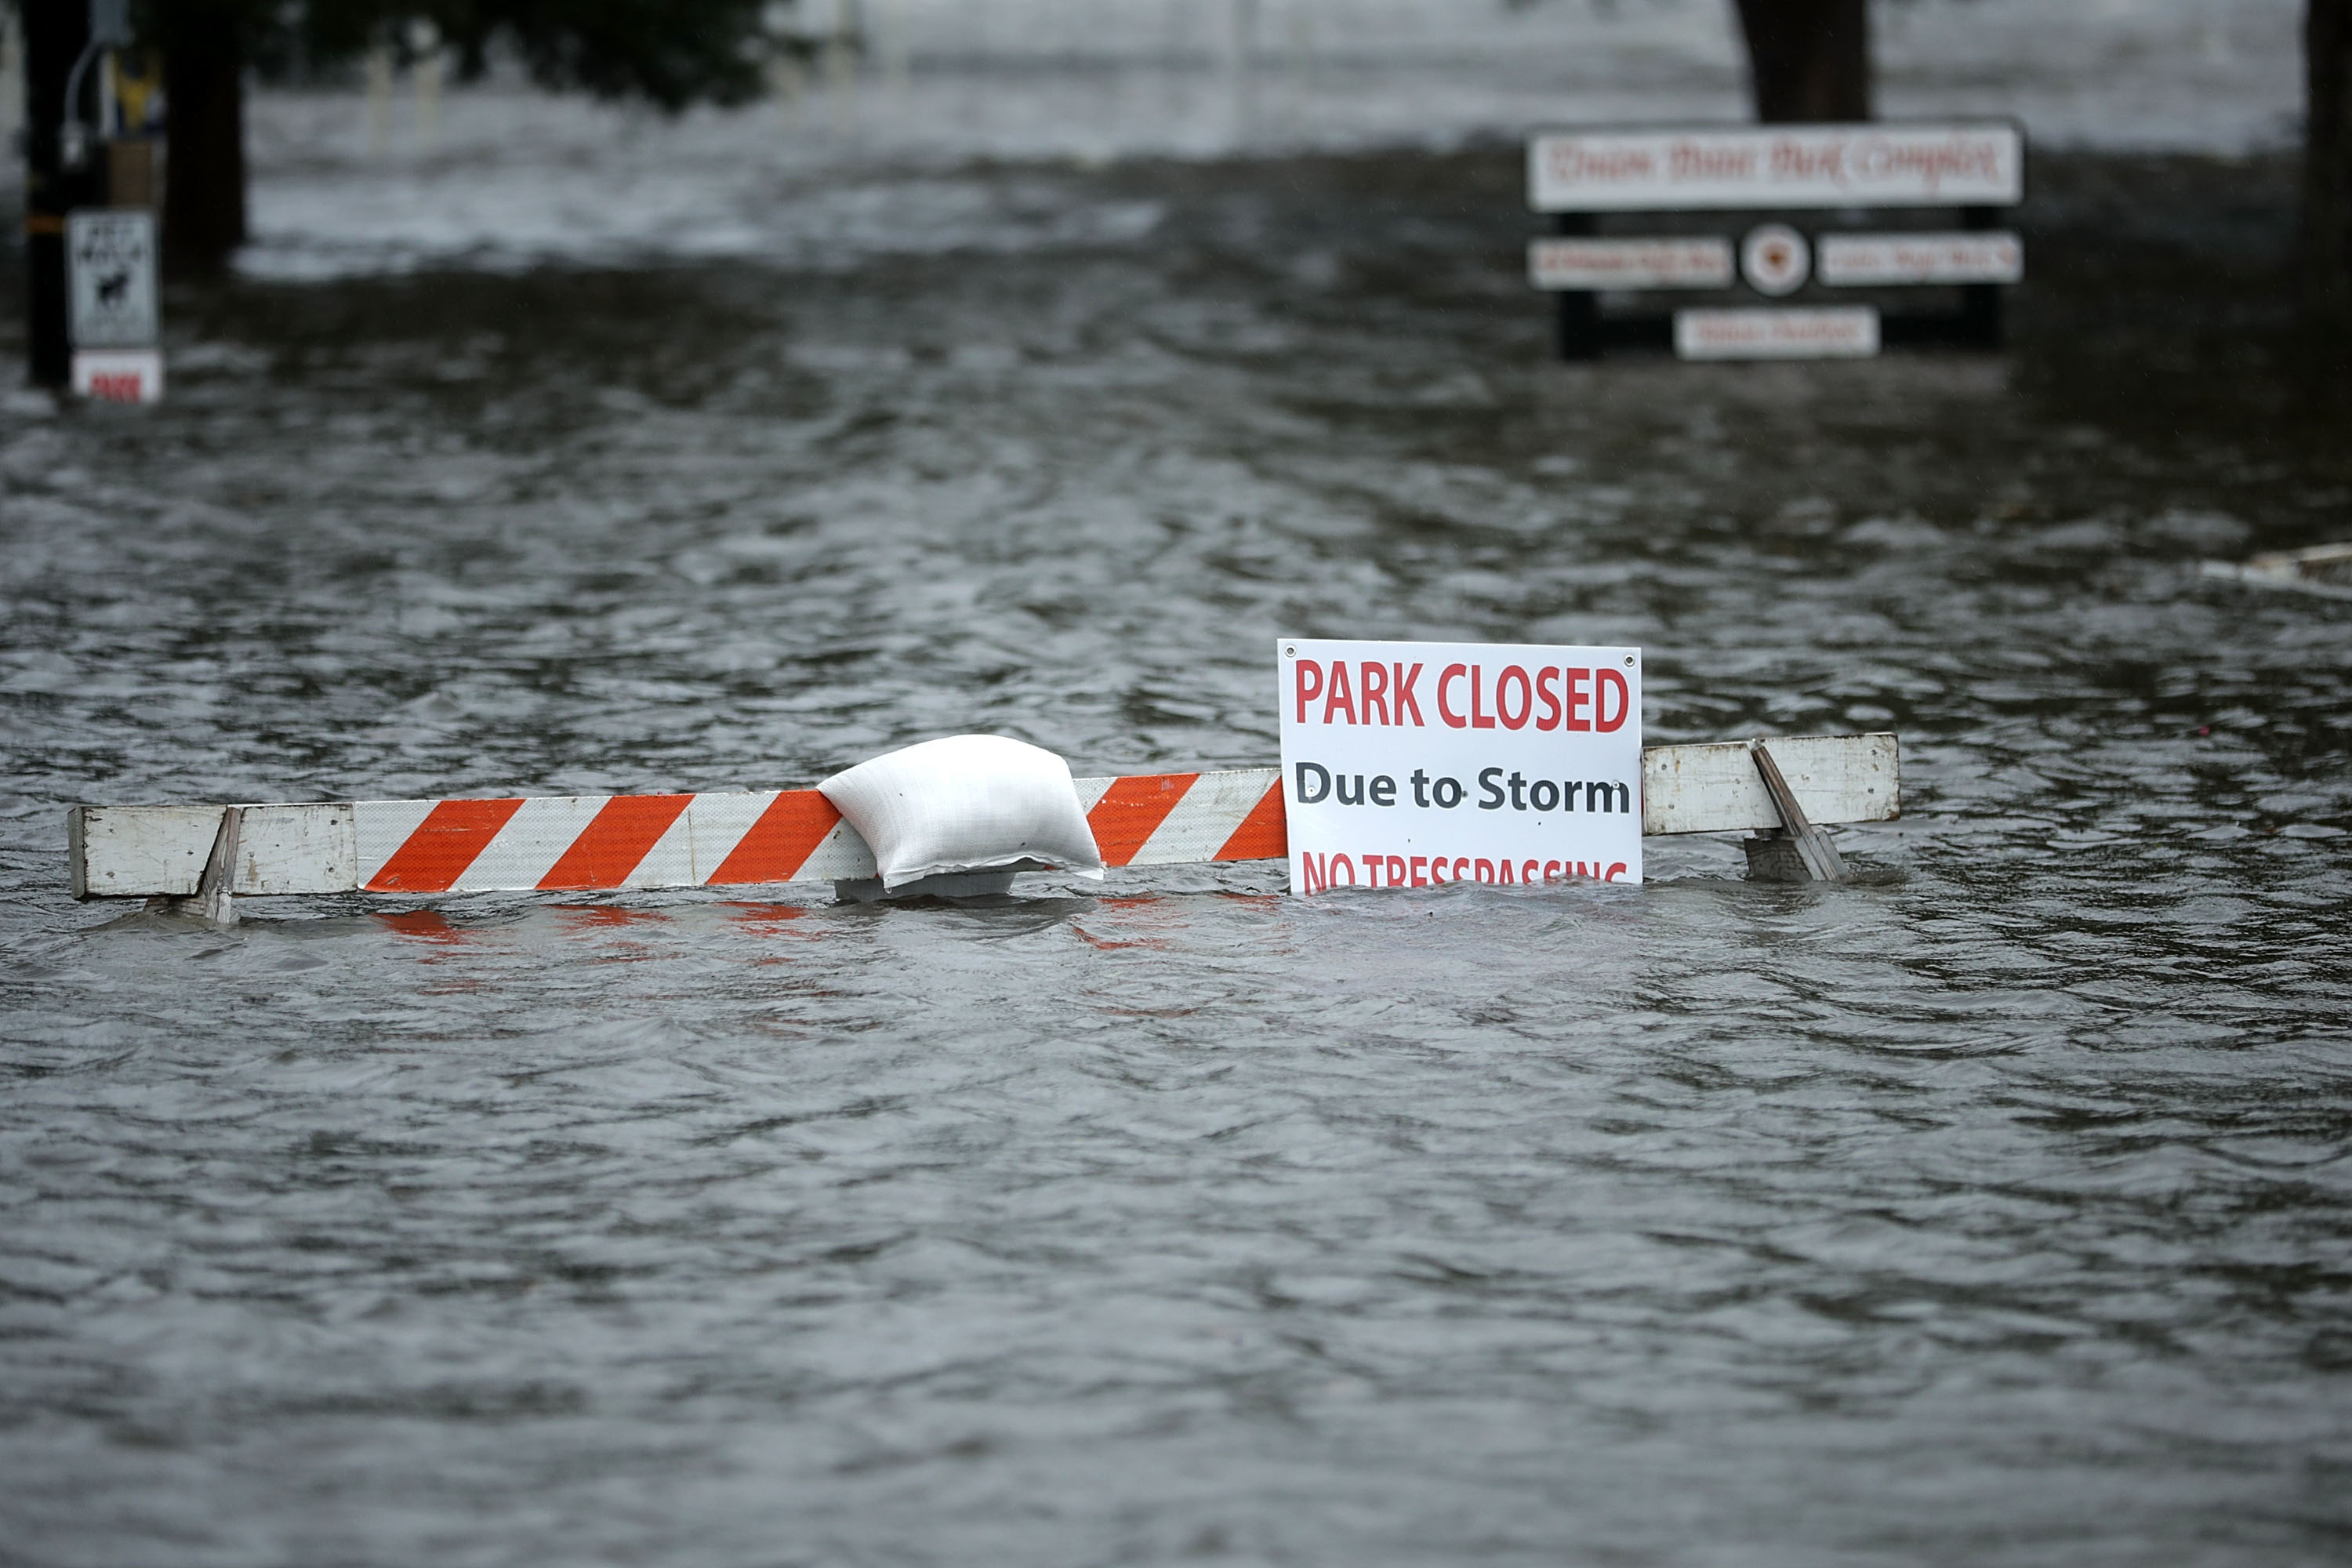 A sign warns people away from Union Point Park after is was flooded by the Neuse River during Hurricane Florence September 13, 2018 in New Bern, North Carolina. Coastal cities in North Carolina, South Carolina and Virginia are under evacuation orders as the Category 2 hurricane approaches the United States.